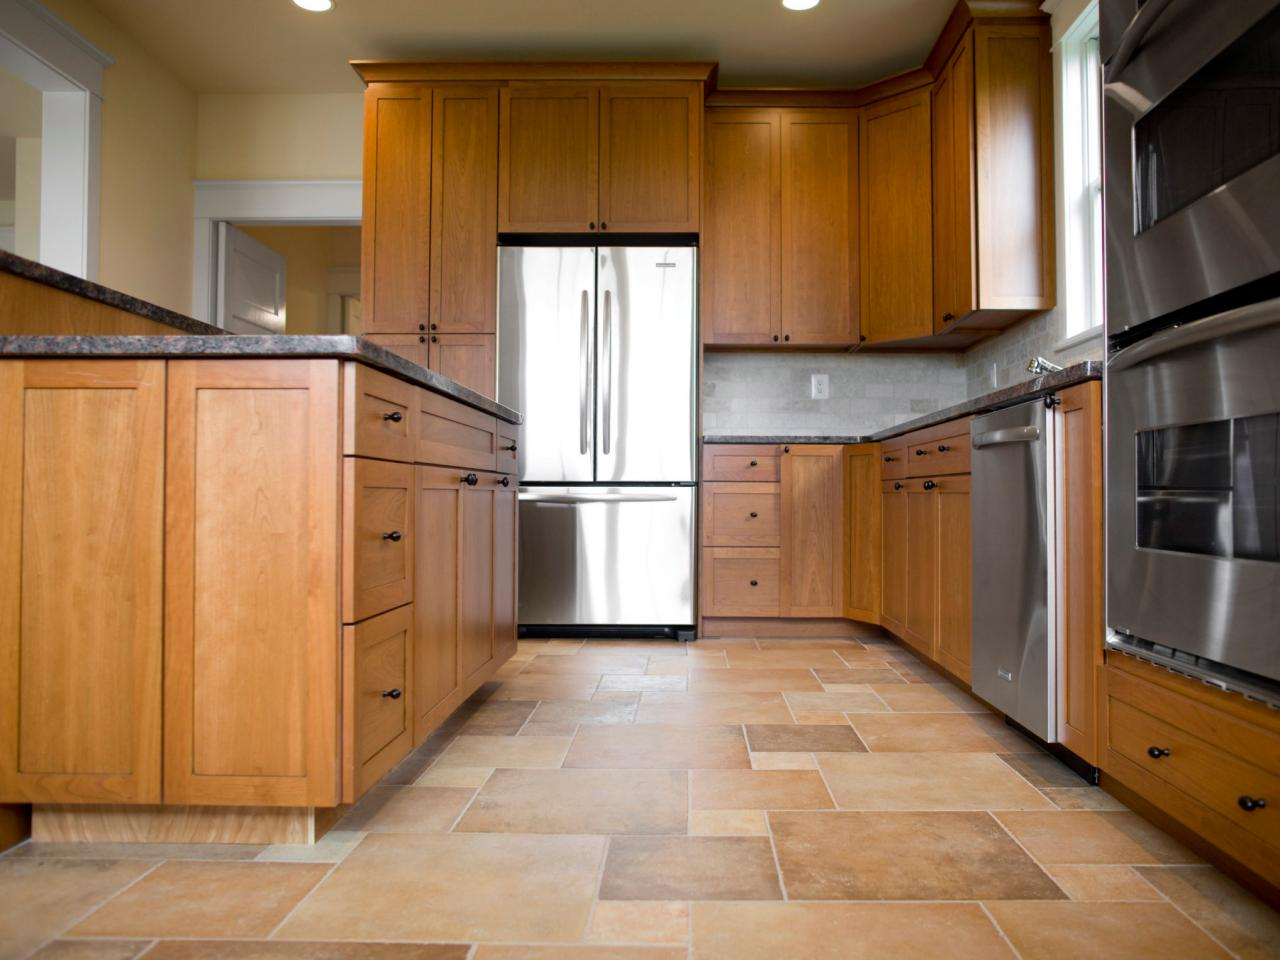 Whats the best kitchen floor tile diy related to kitchen floors floor tile dailygadgetfo Choice Image